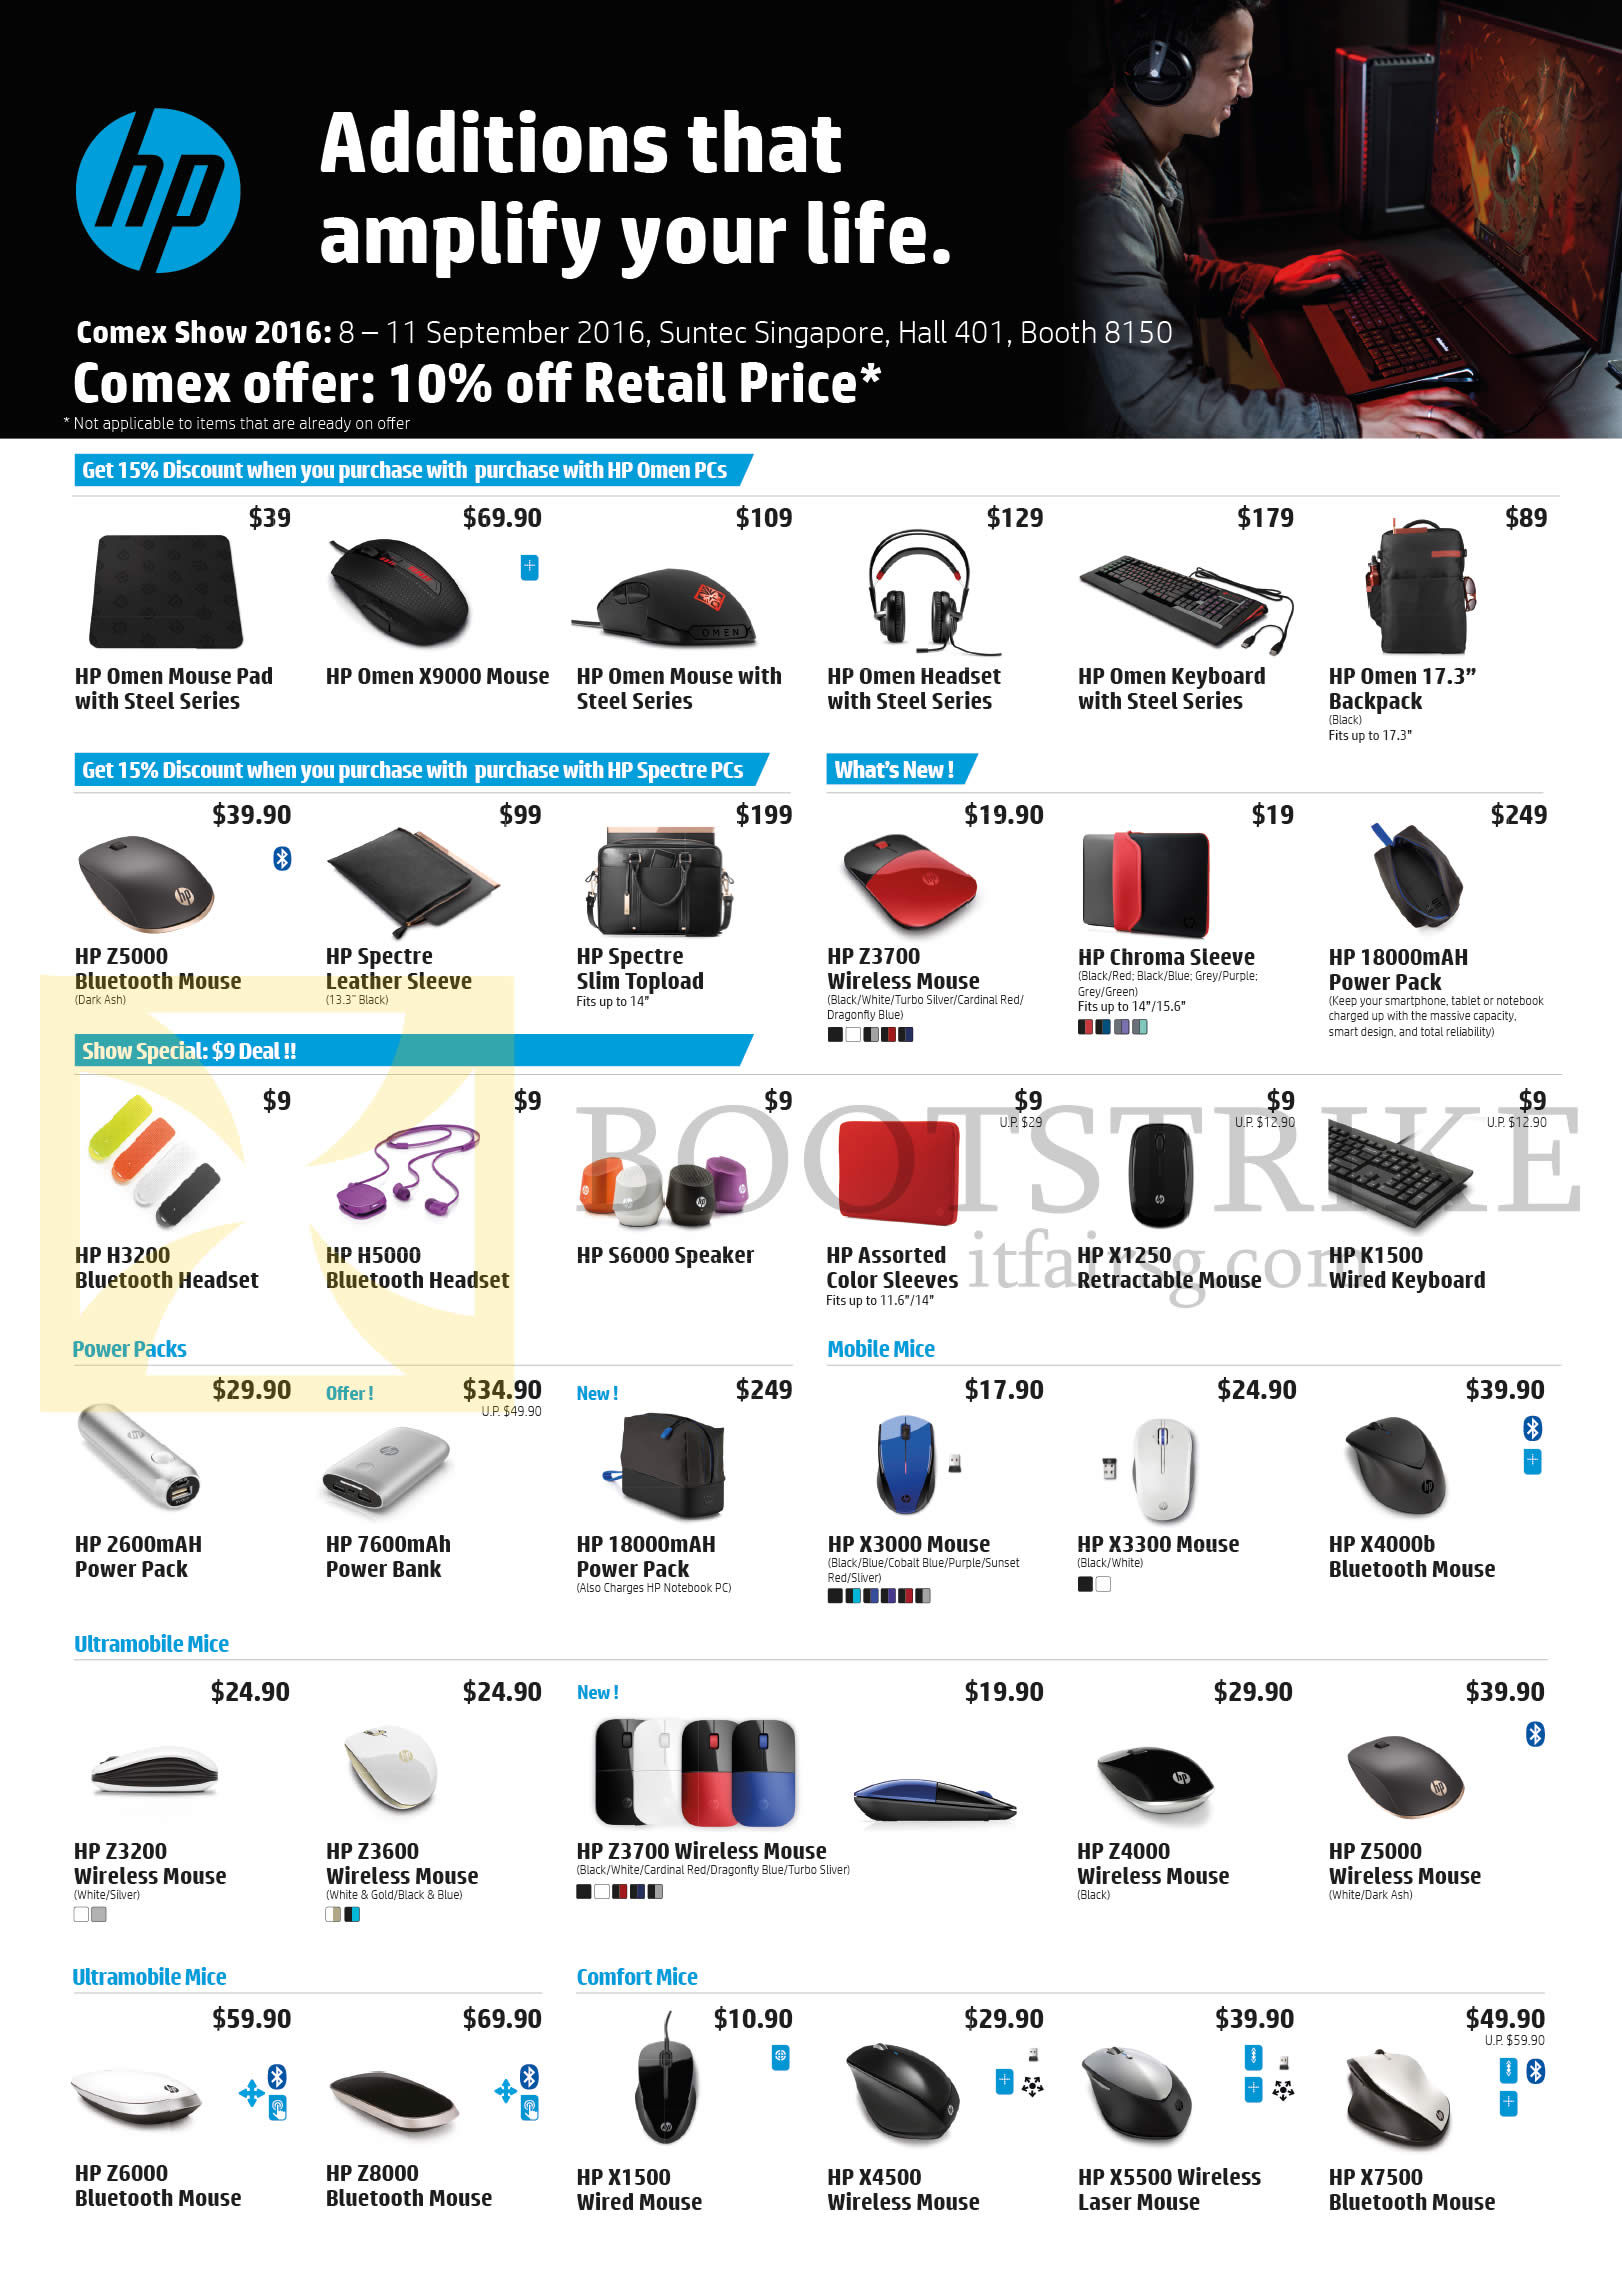 COMEX 2016 price list image brochure of HP Accessories Mousepads, Mouse, Keyboards, Headphones, Sleeves, Power Banks